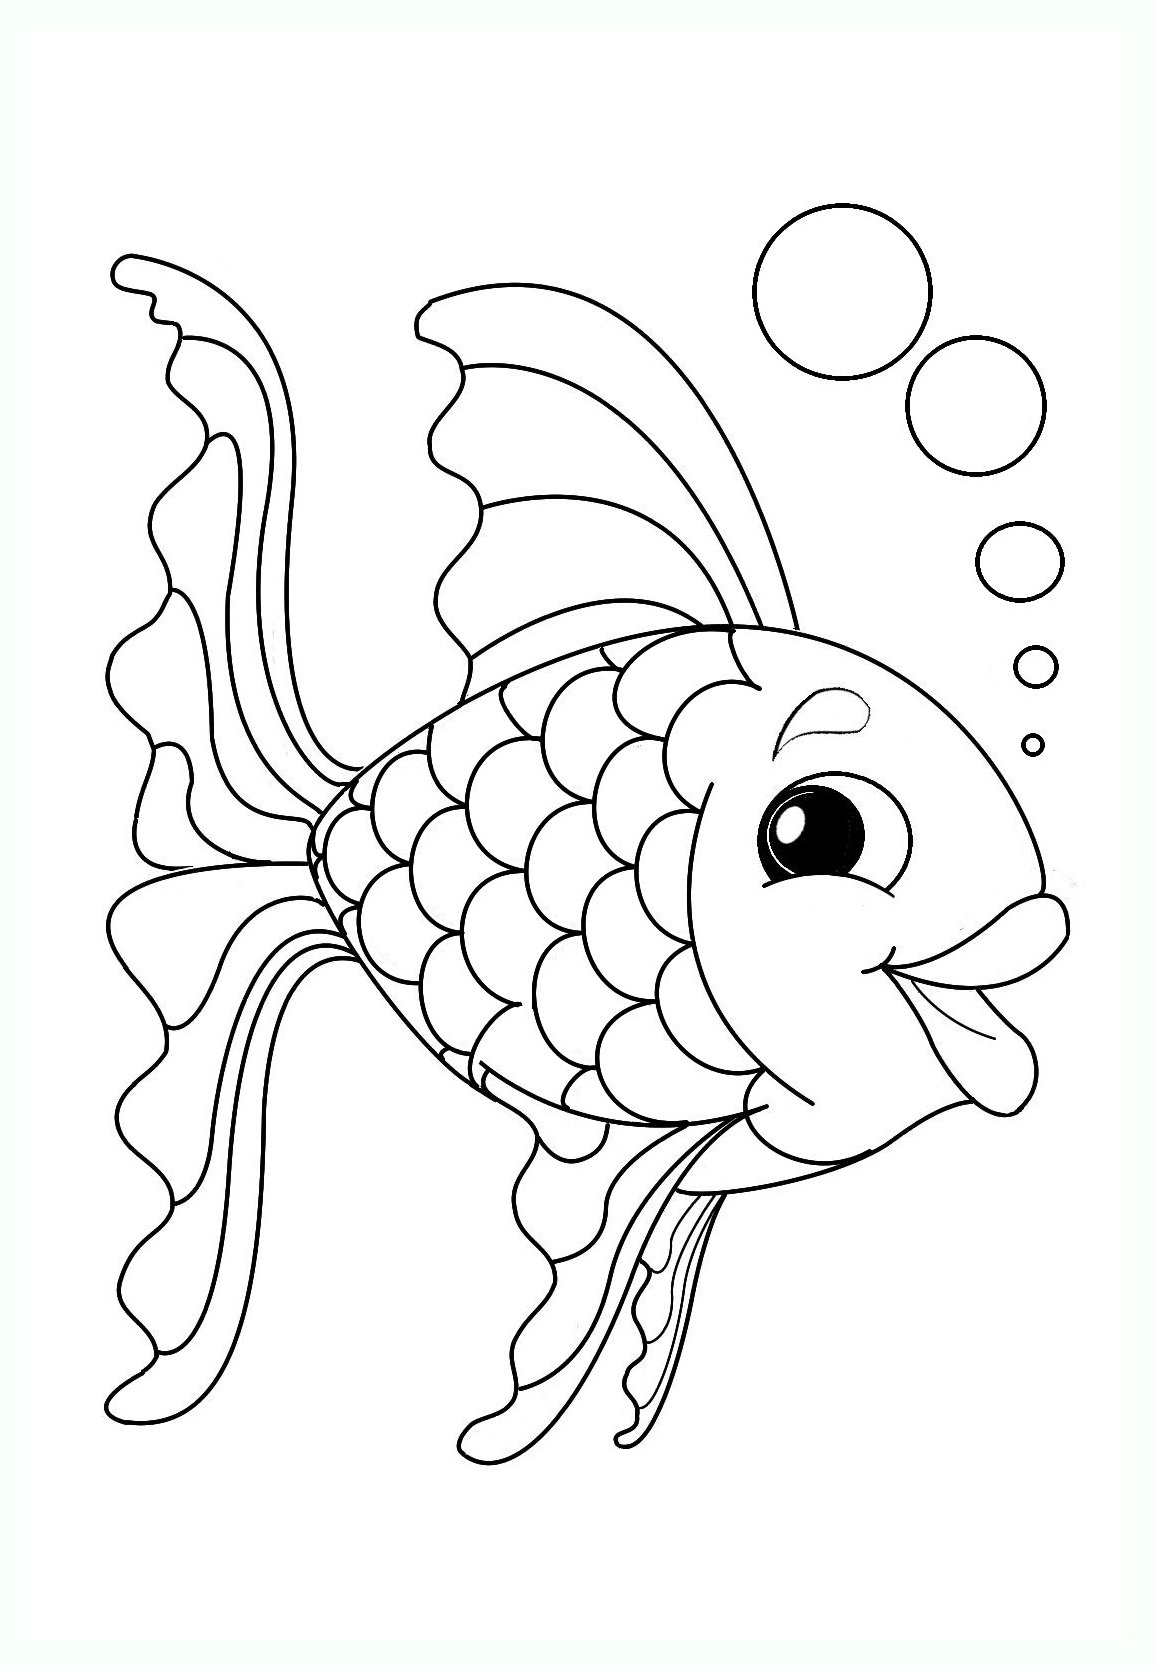 coloriage poisson 1 avril